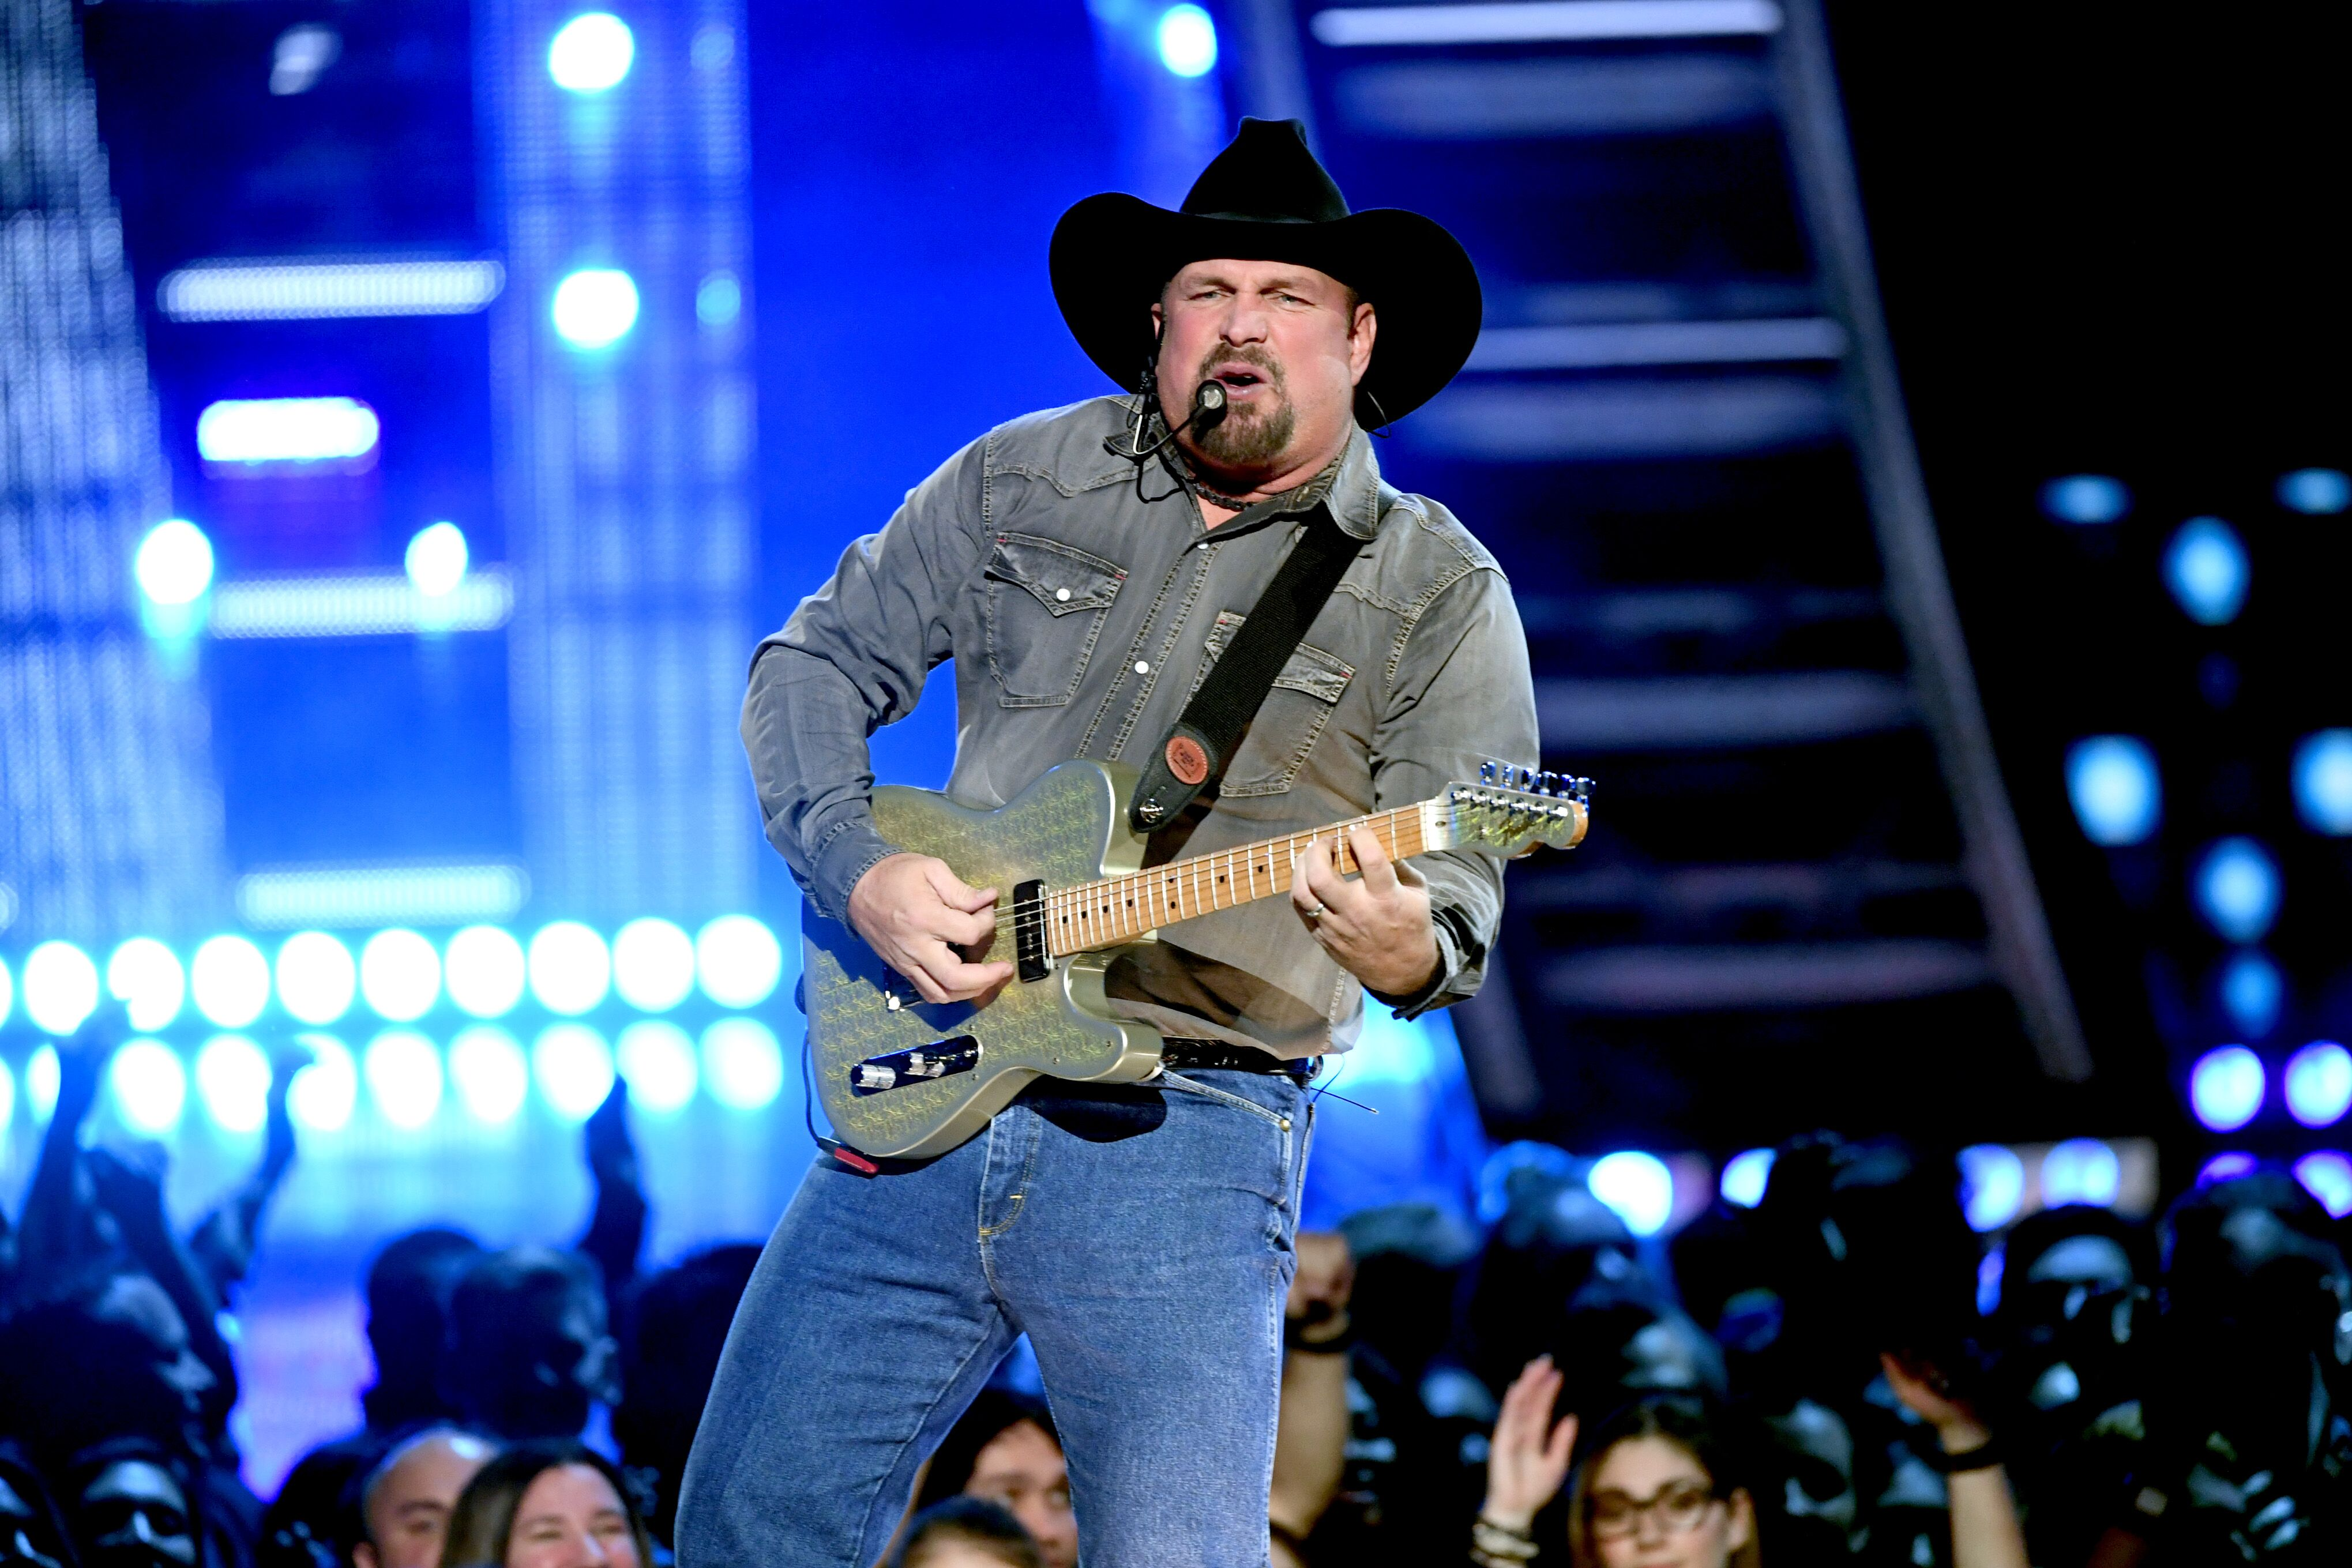 Garth Brooks performs on stage at the 2019 iHeartRadio Music Awards. | Source: Getty Images